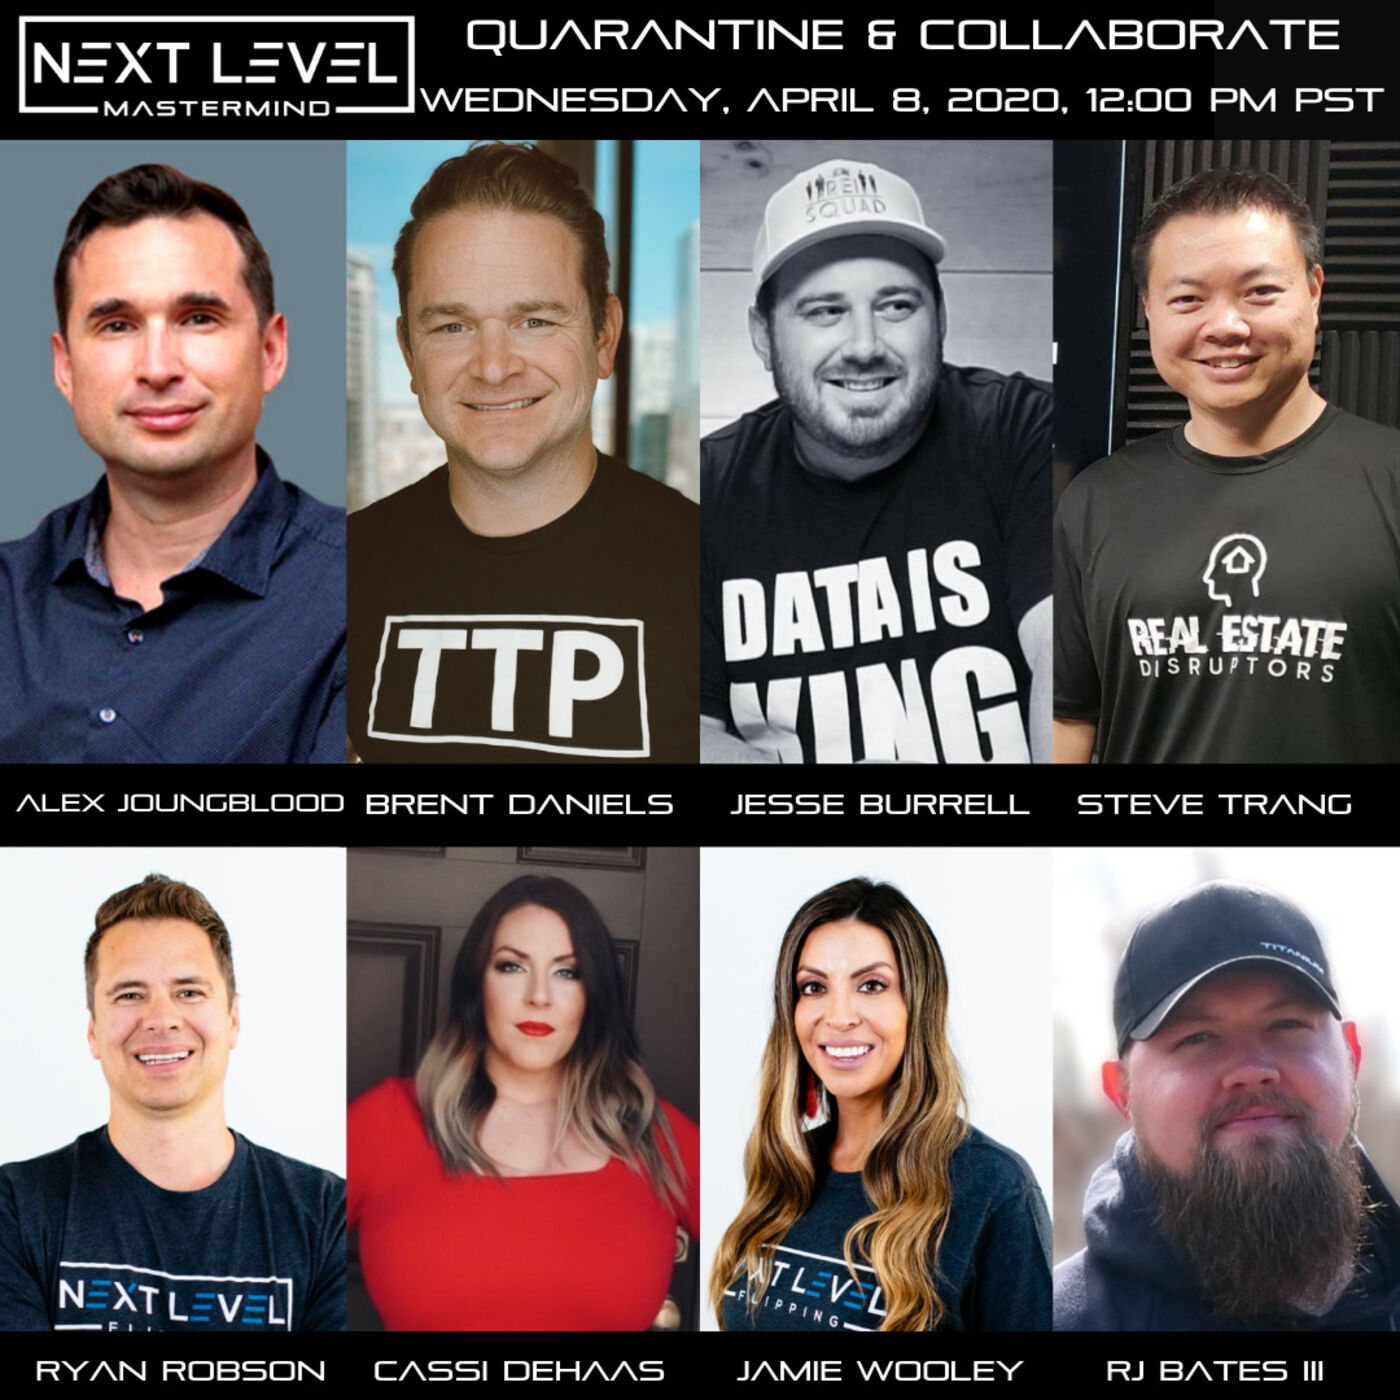 Quarantine & Collaborate